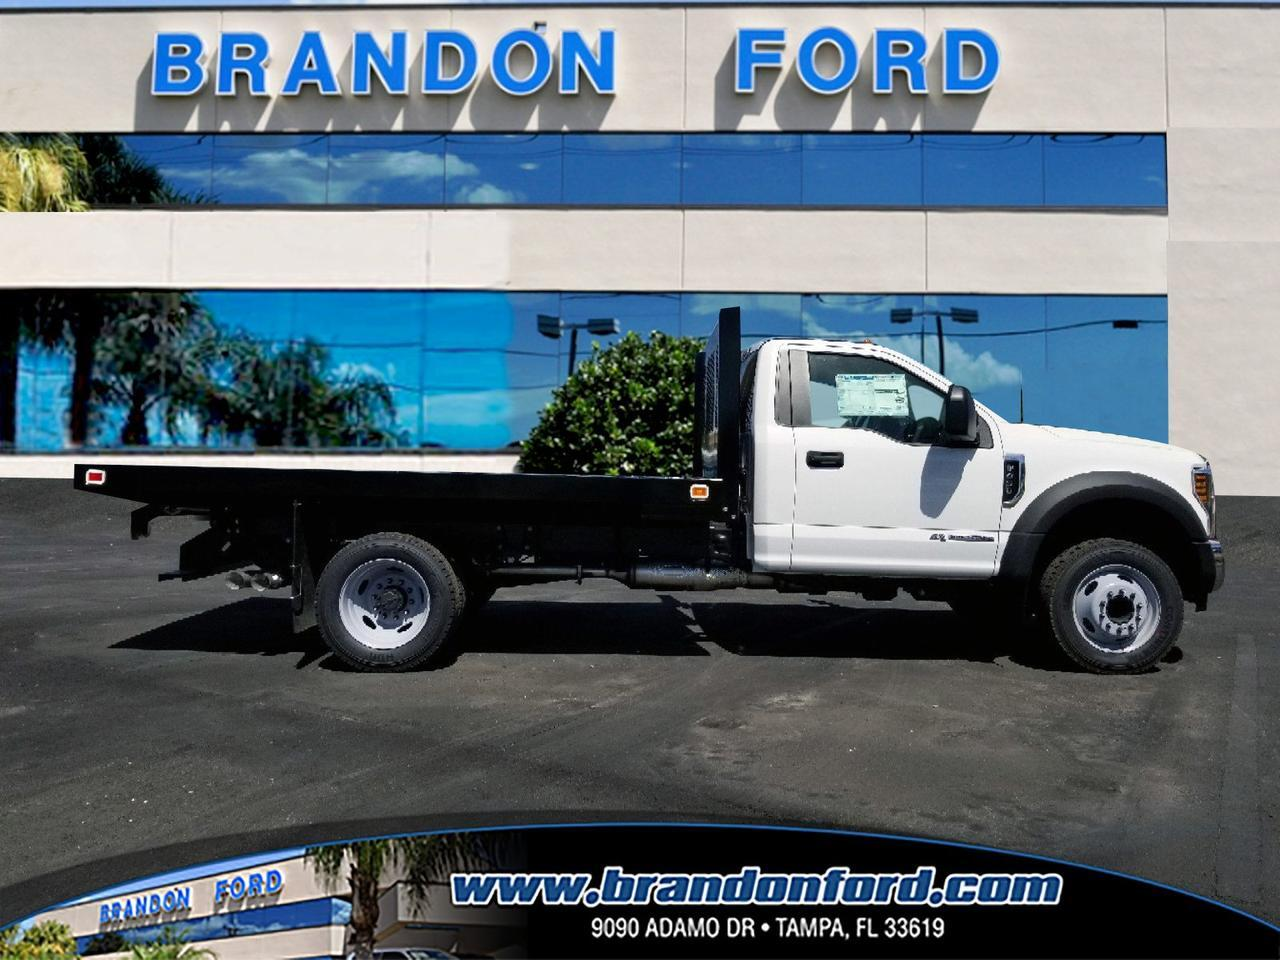 Shutterstock 160680575 Certified St  Small 2 additionally New 2018 Ford Super Duty F 450 Drw Xl 12 Foot Flatbed T a Fl Id 23306378 further C ervan Toilet Options further 2018 Lincoln Navigator First Test Review as well Ford Excursion 2014 Lifted. on 04 ford expedition